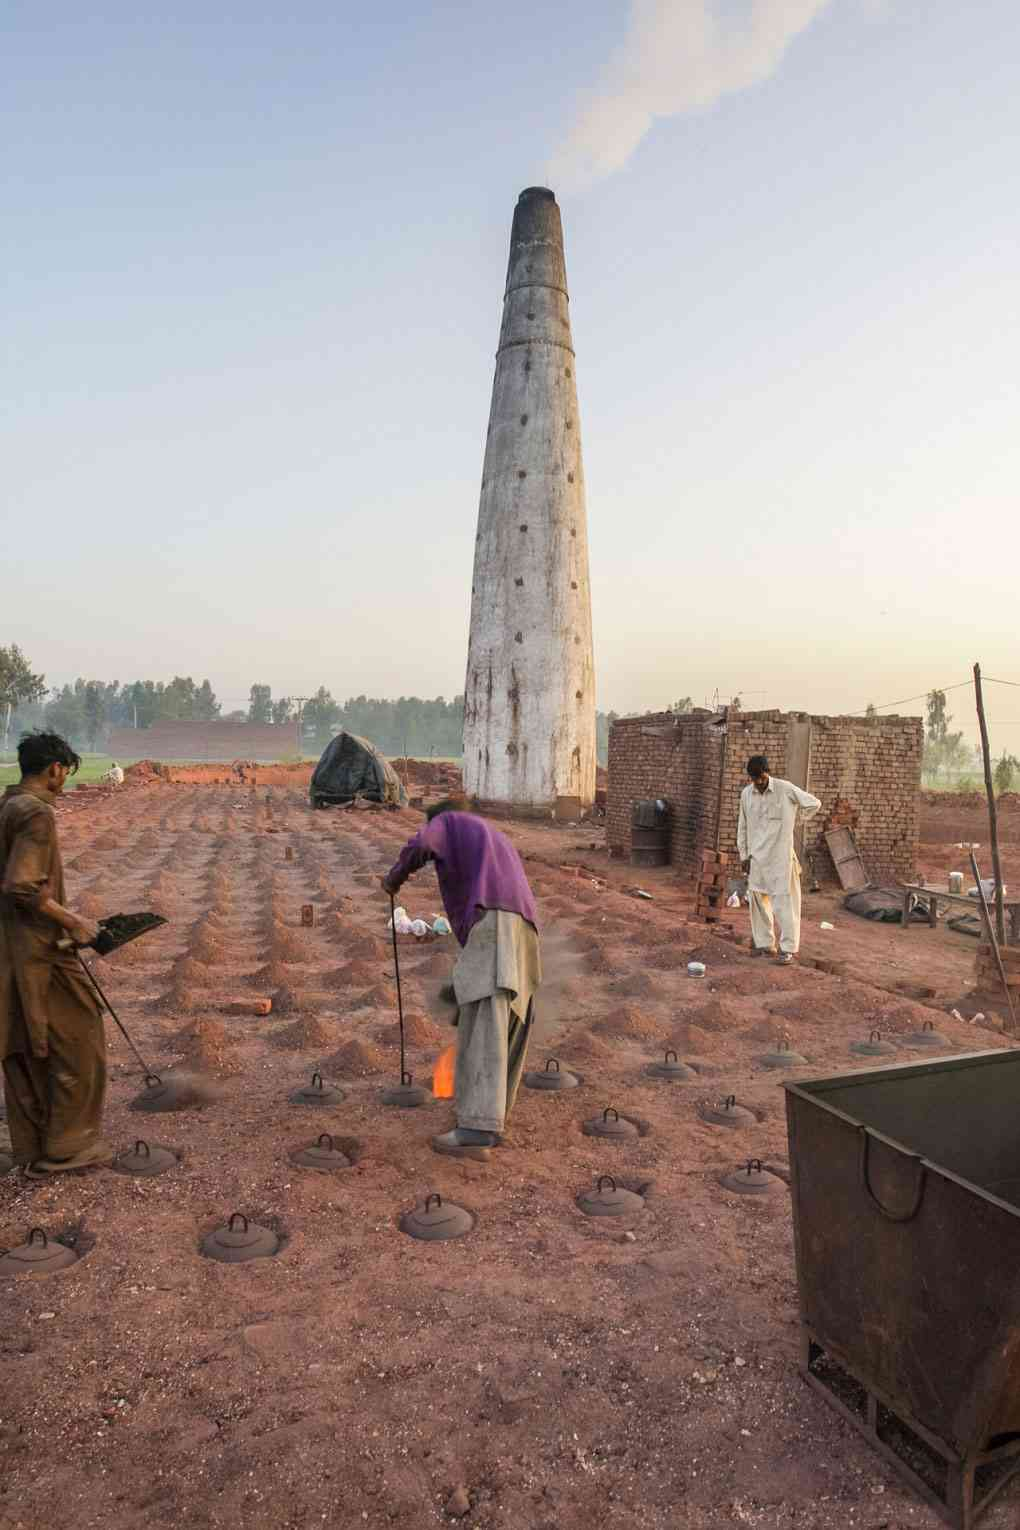 Nearly 2.3 million daily wage labourers work at the brick kilns. Photo credit: Ghulam Rasool